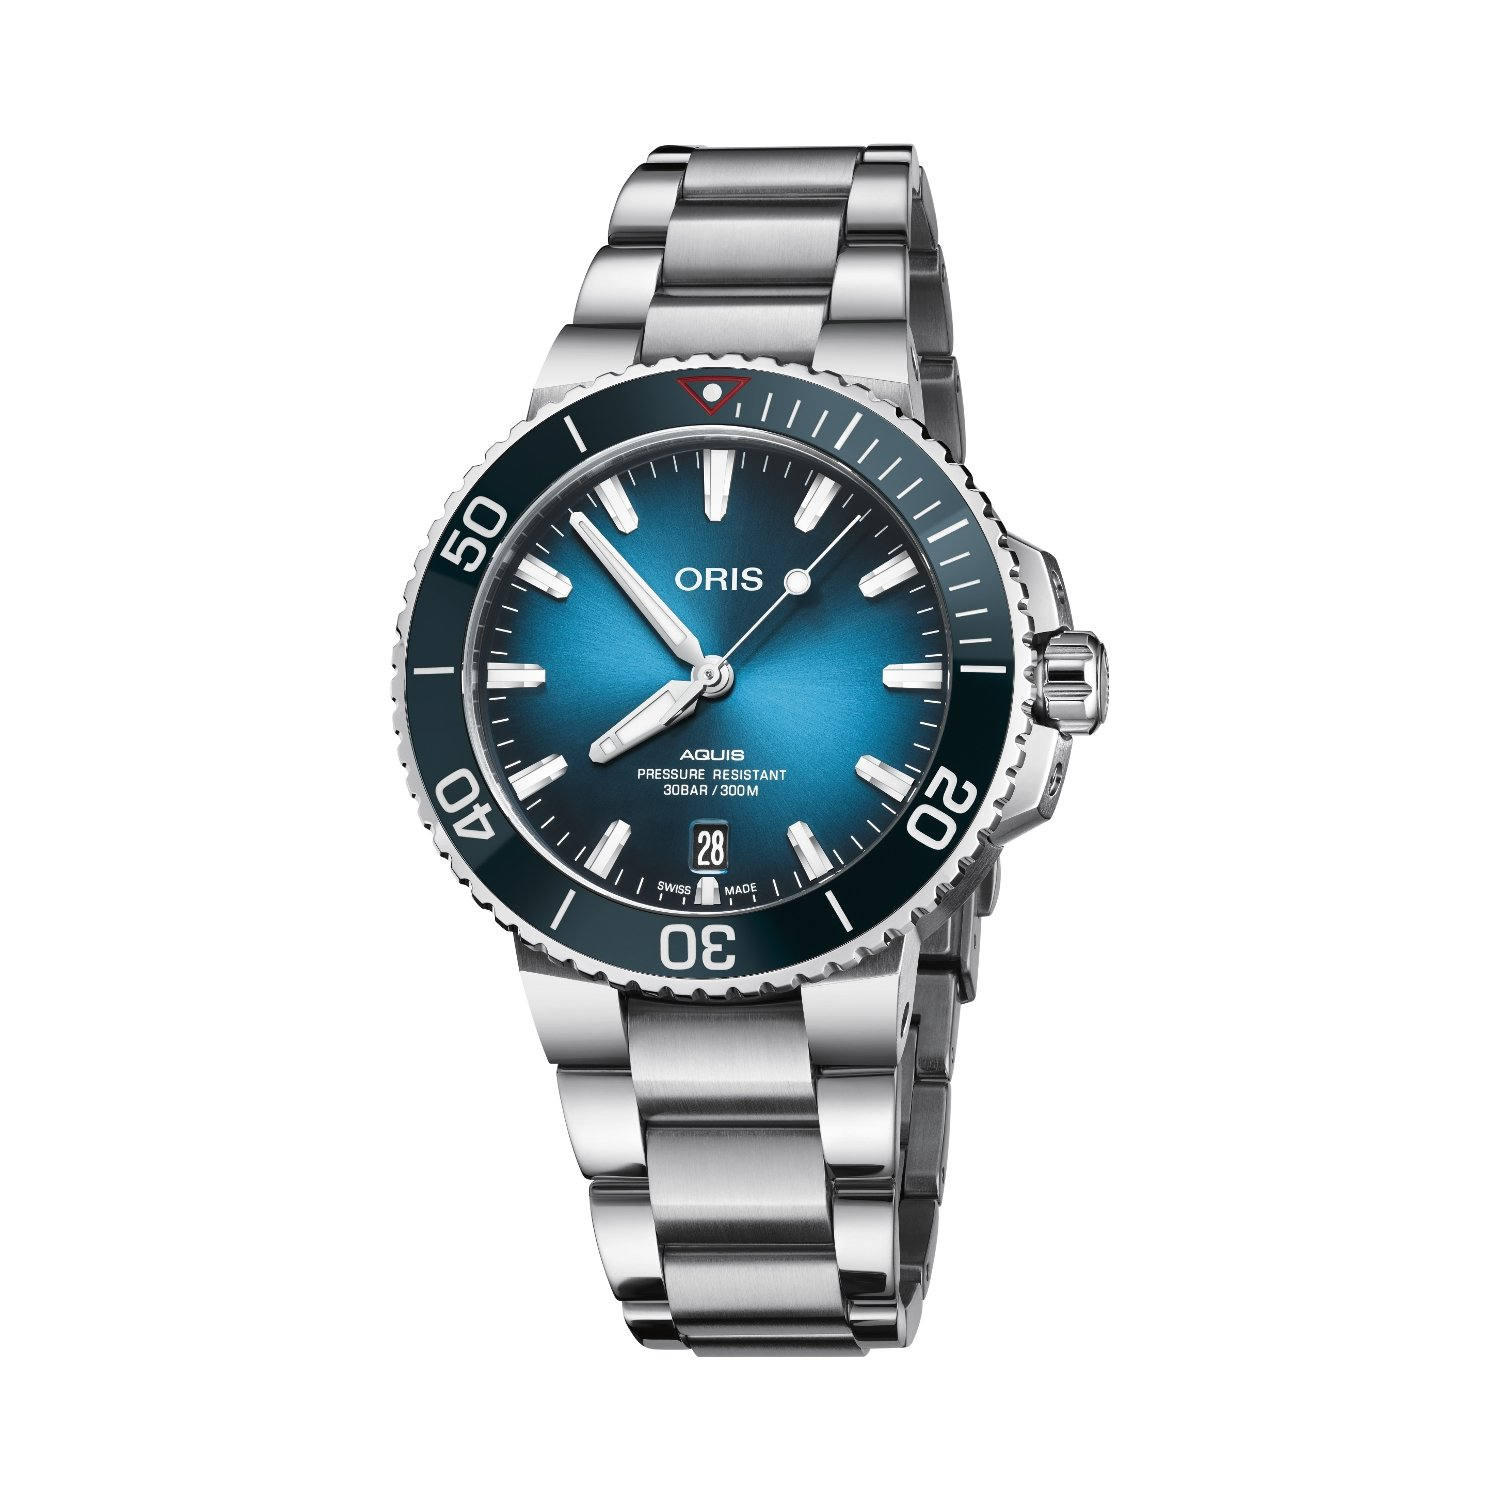 Montre Oris Clean Ocean Limited Edition vue 1